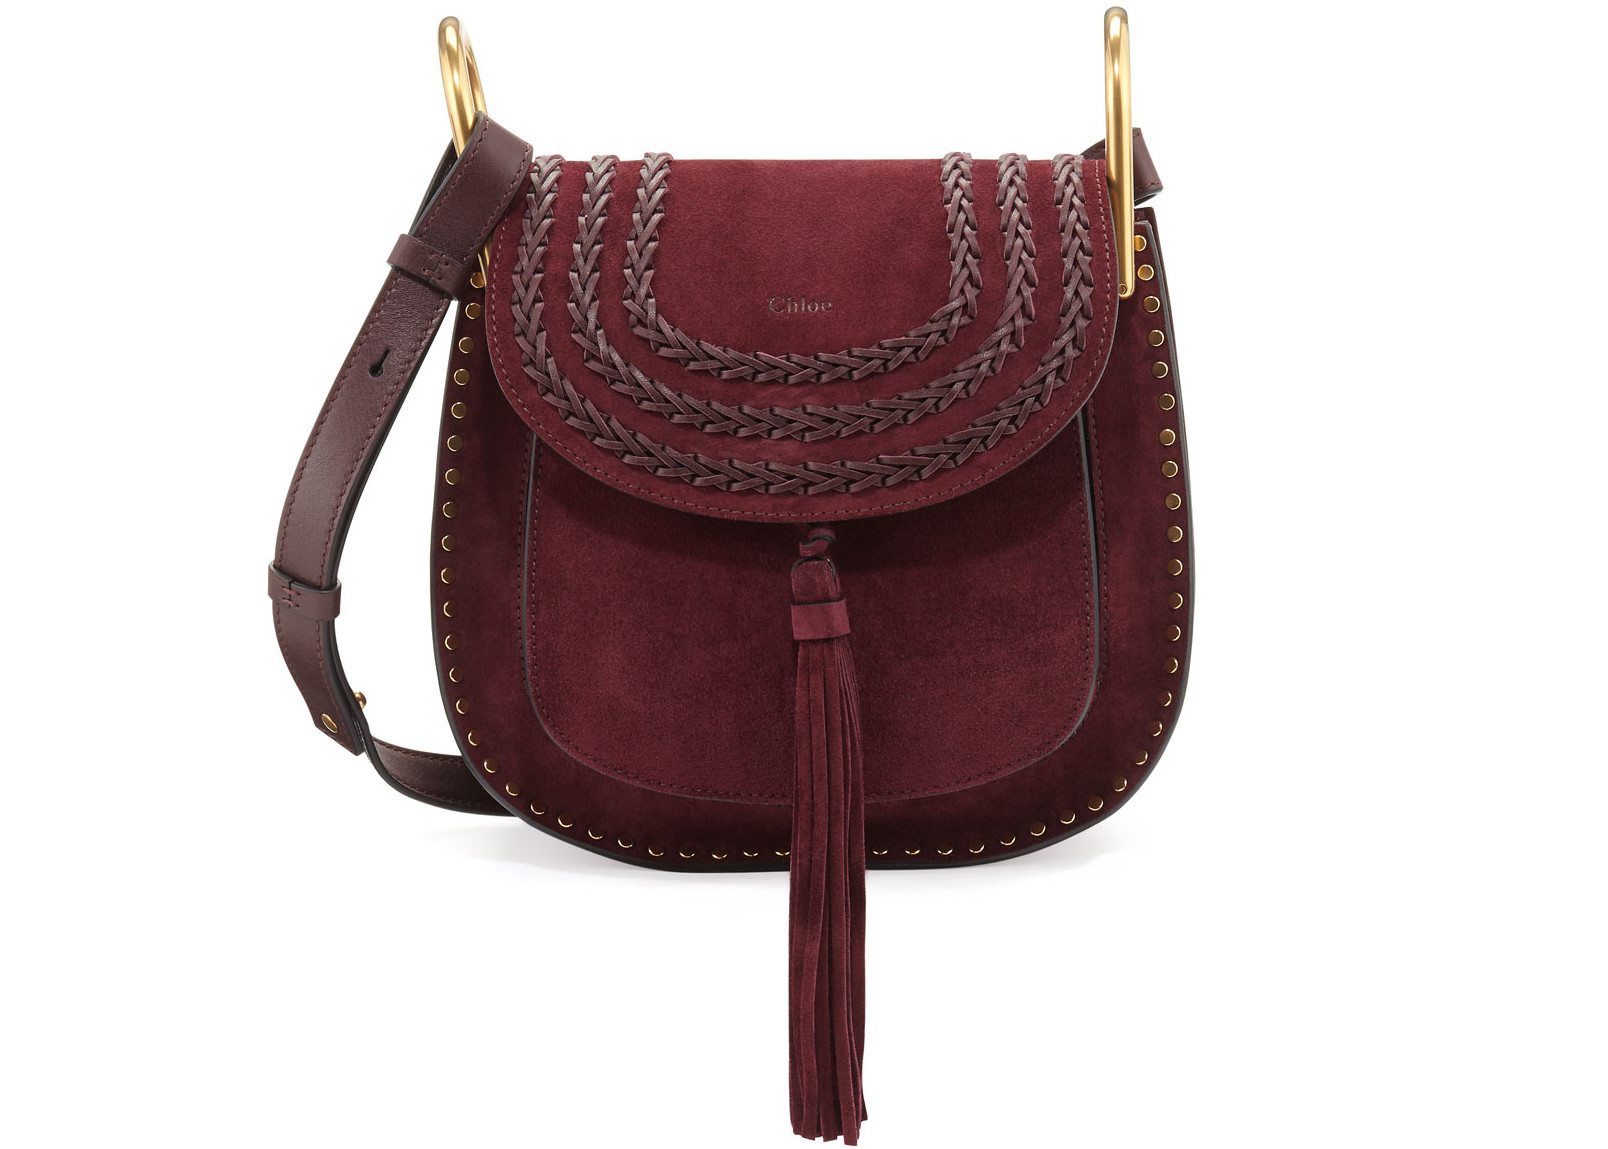 a3b95e1f Currently Coveting This Chloé Hudson Suede Shoulder Bag - PurseBlog